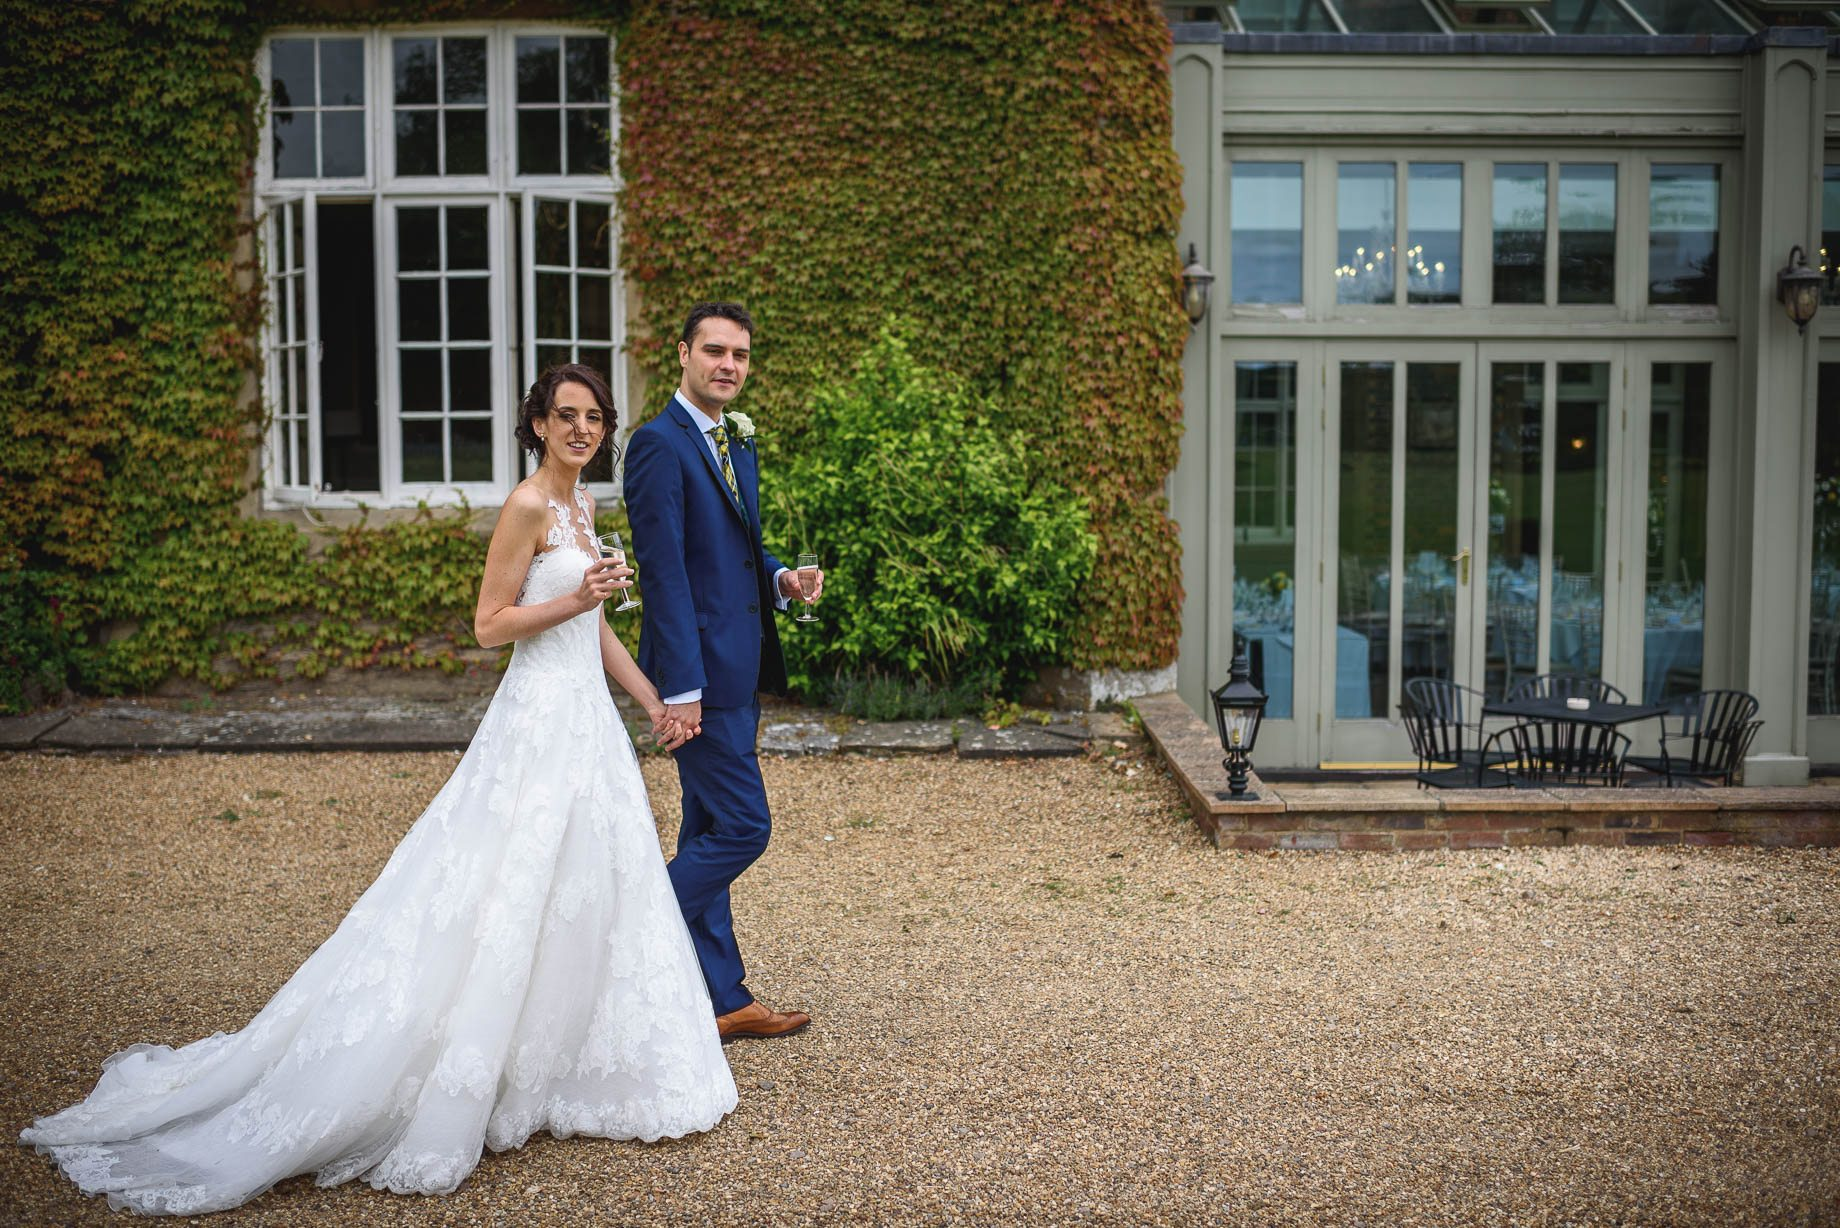 Hertfordshire wedding photography - Sarah and Stephen by Guy Collier Photography (91 of 161)